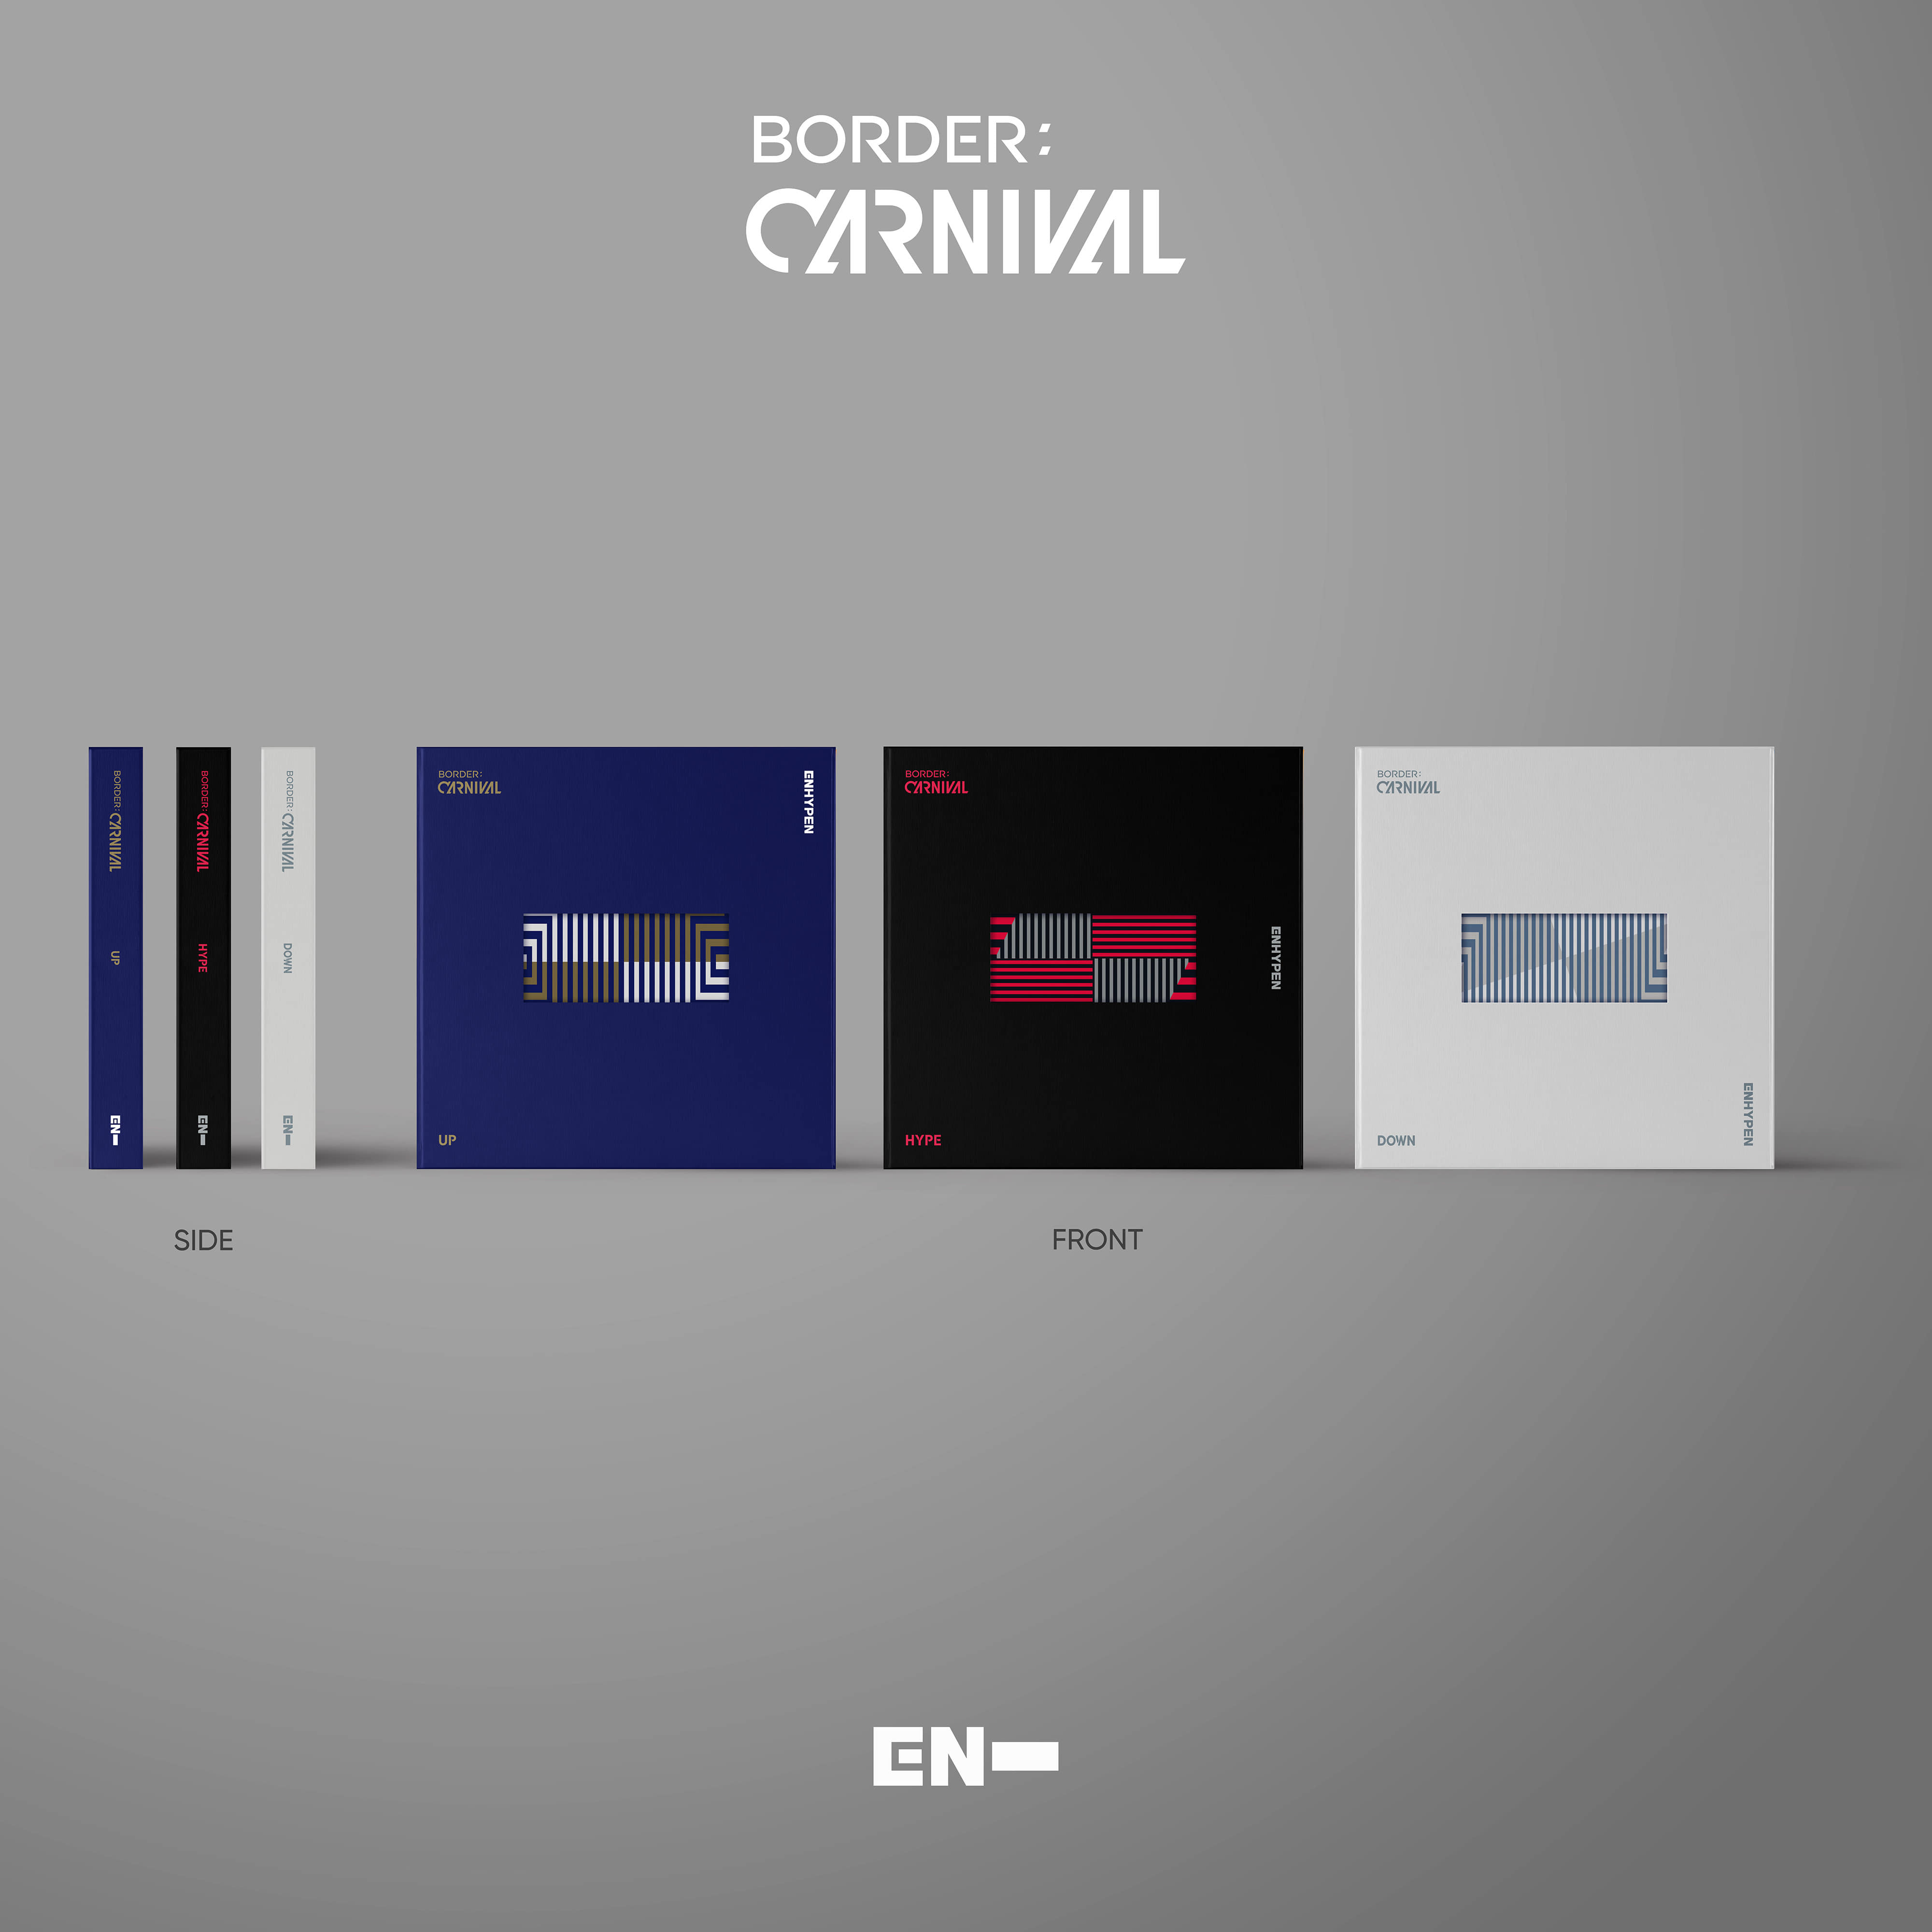 [PRE-ORDER] 엔하이픈(ENHYPEN) - 2ND MINI ALBUM [BORDER : CARNIVAL] (Random ver.)케이팝스토어(kpop store)